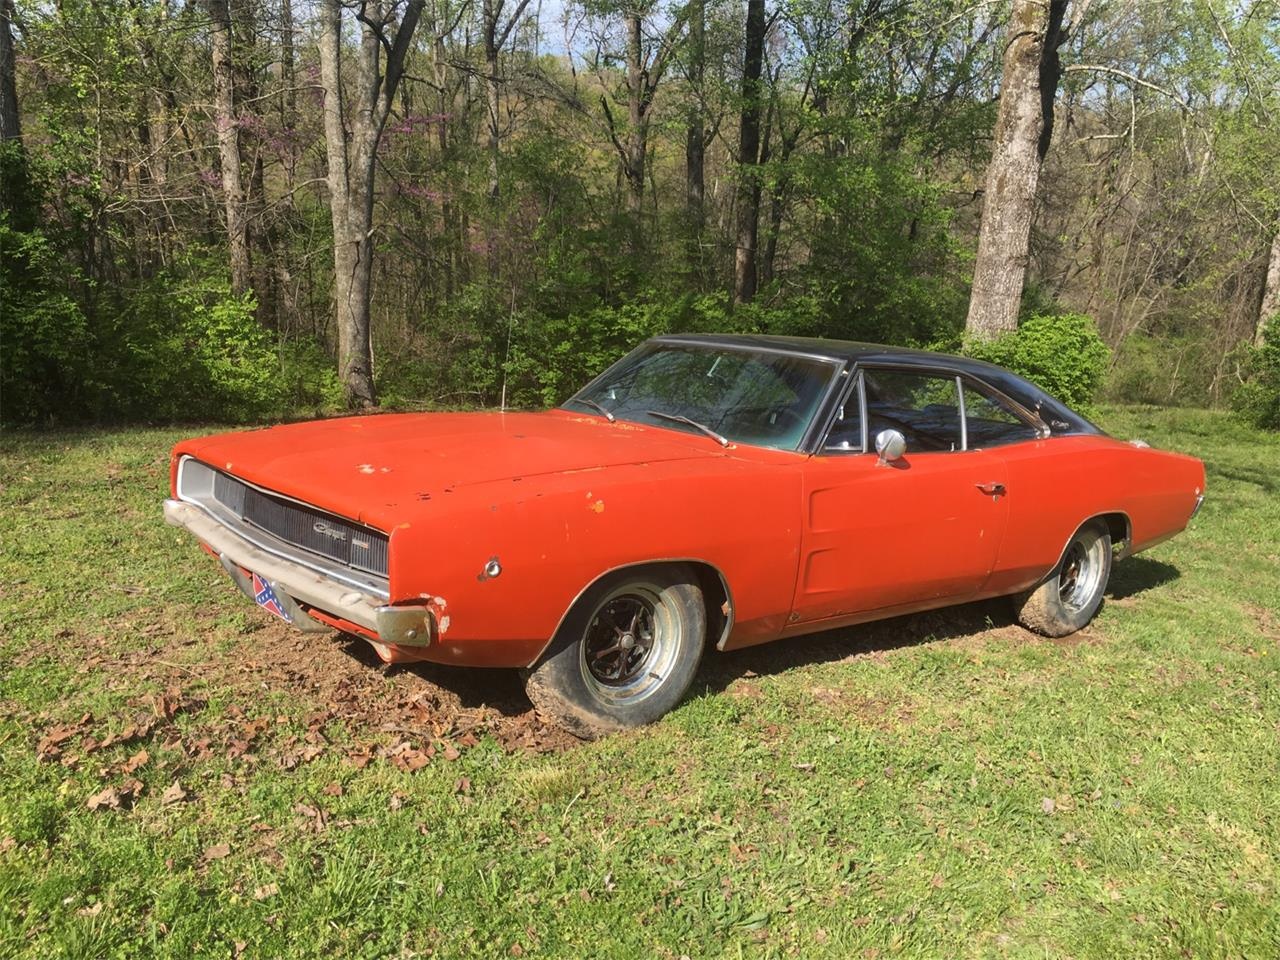 for sale 1968 dodge charger in clinton, tennessee cars - clinton, tn at geebo